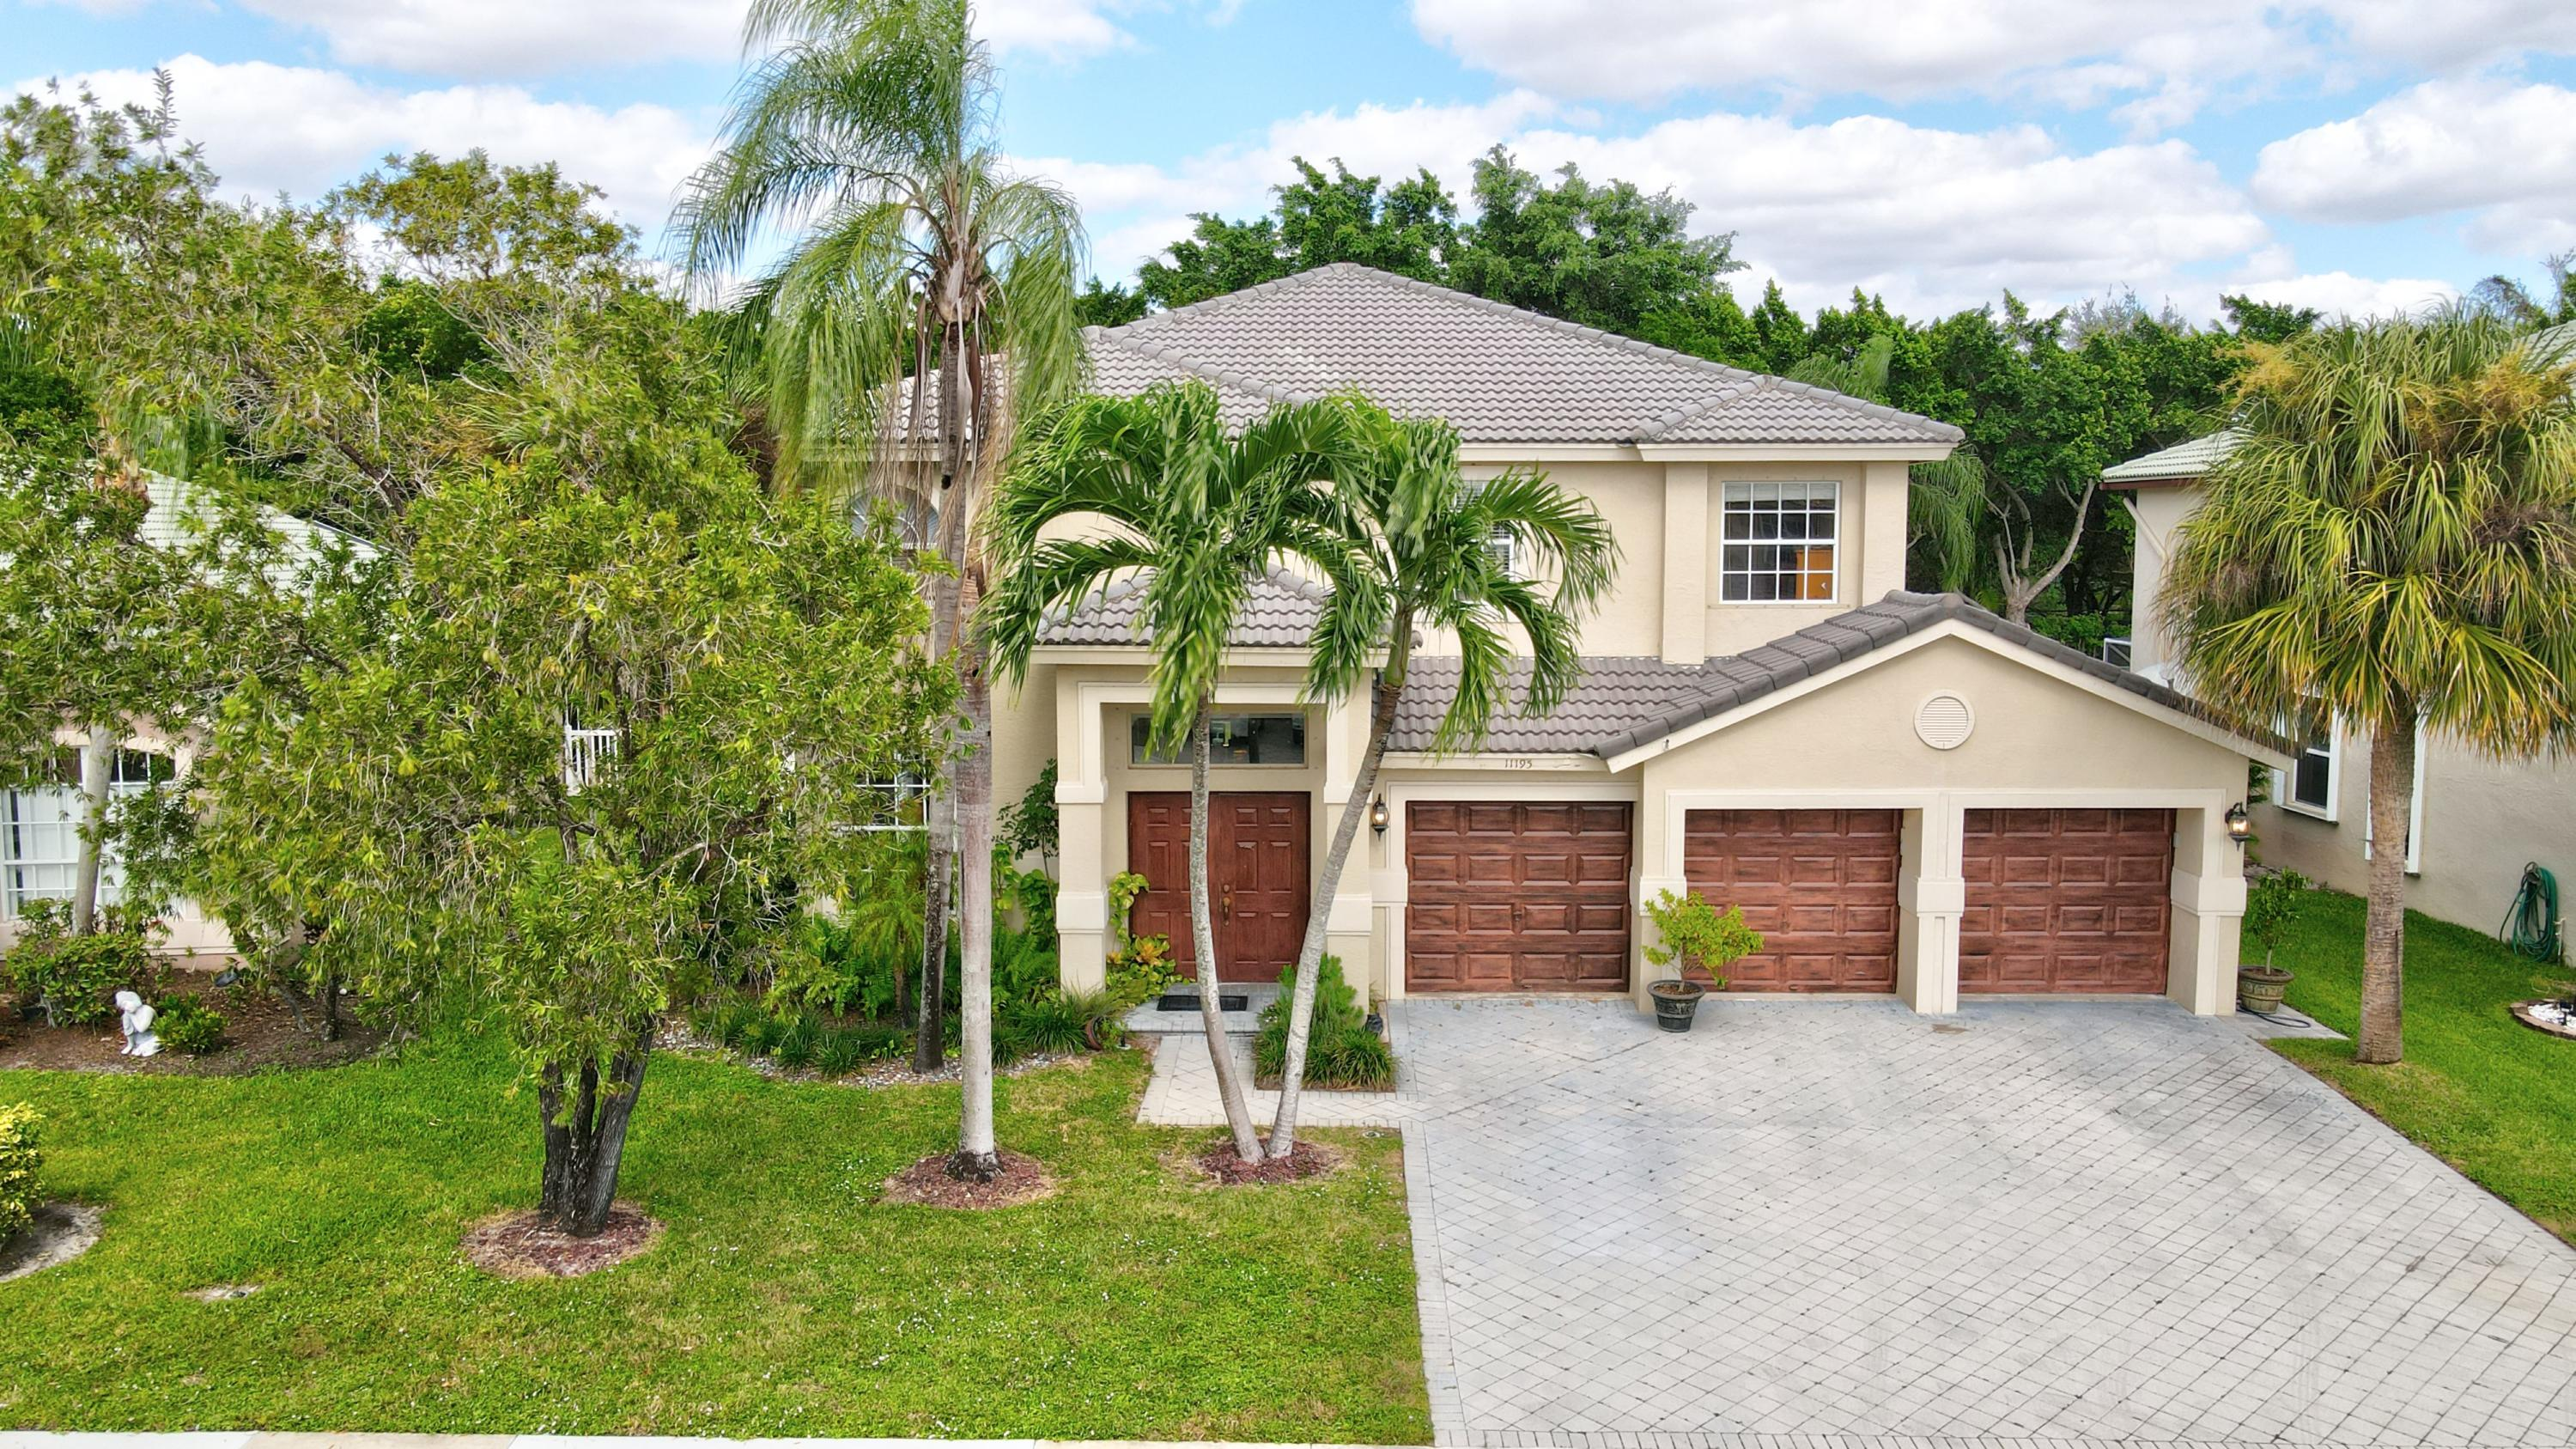 Home for sale in Orange Point Wellington Florida